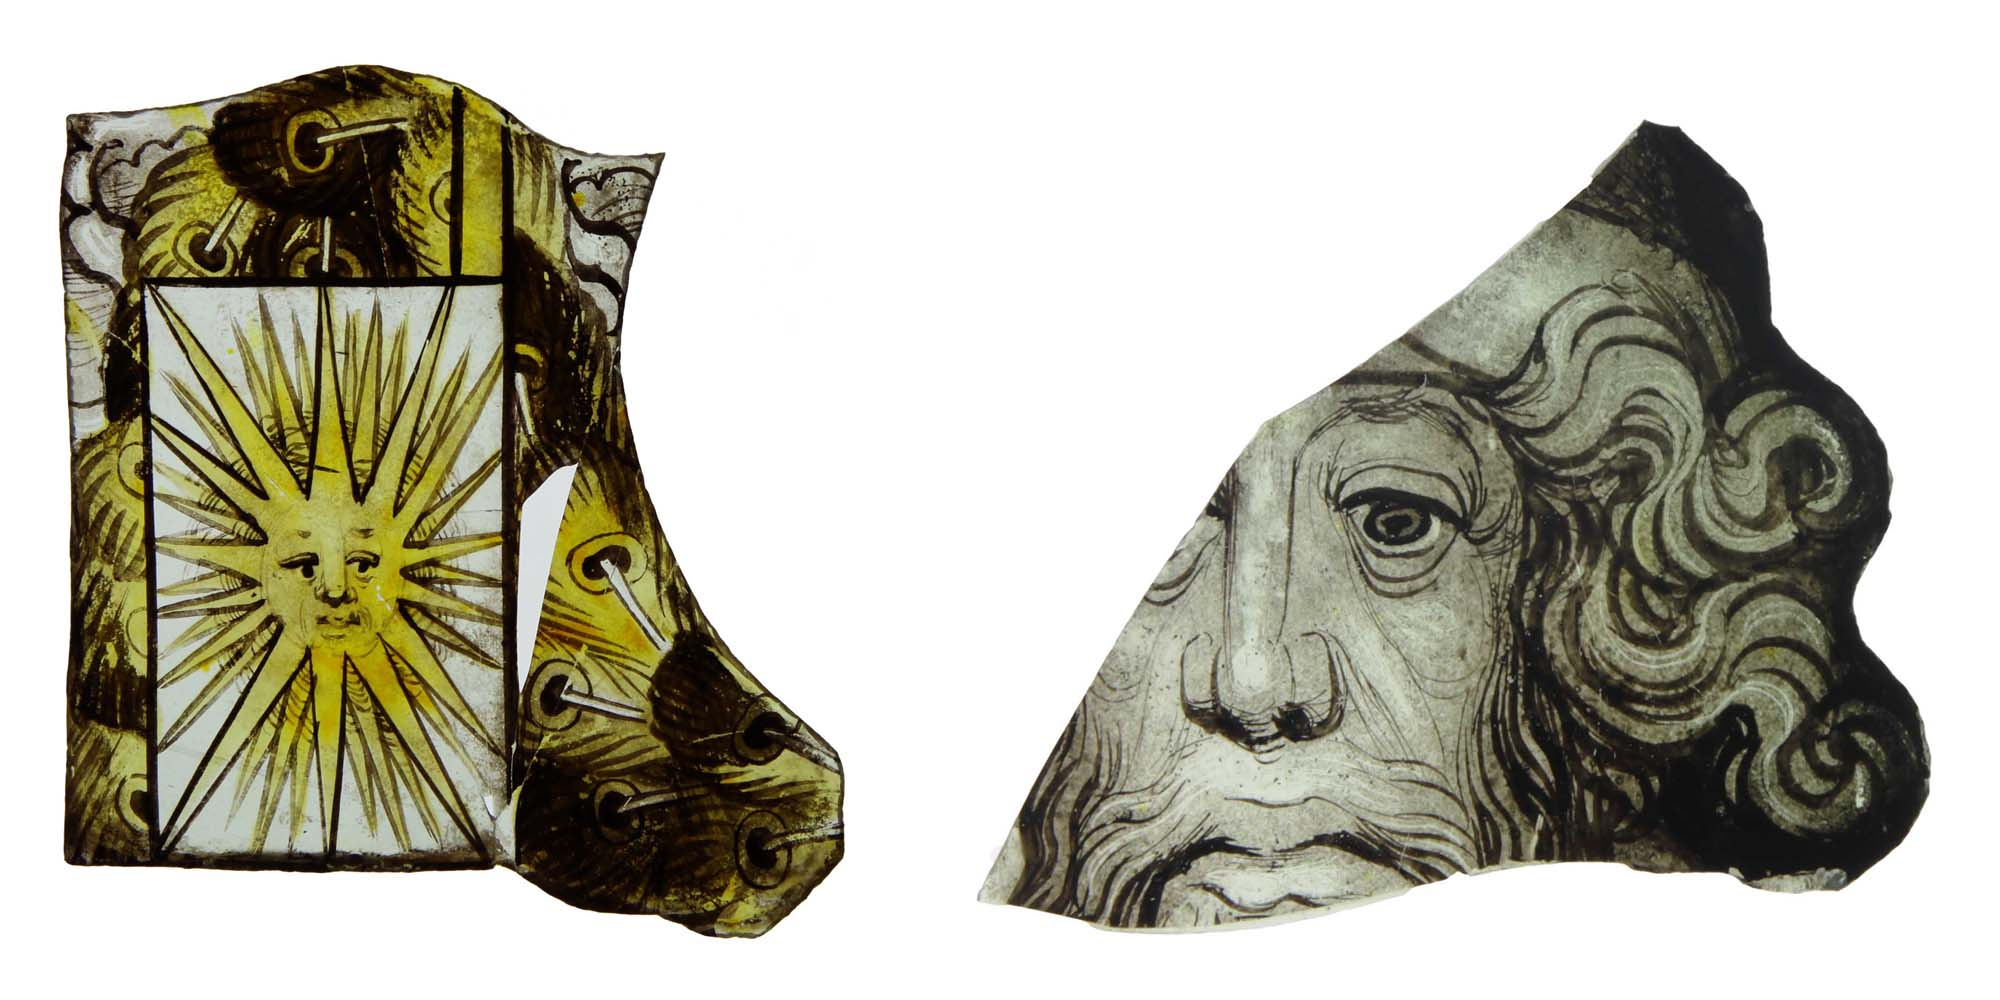 two medieval glass fragments, one showing a male face and another a sun face